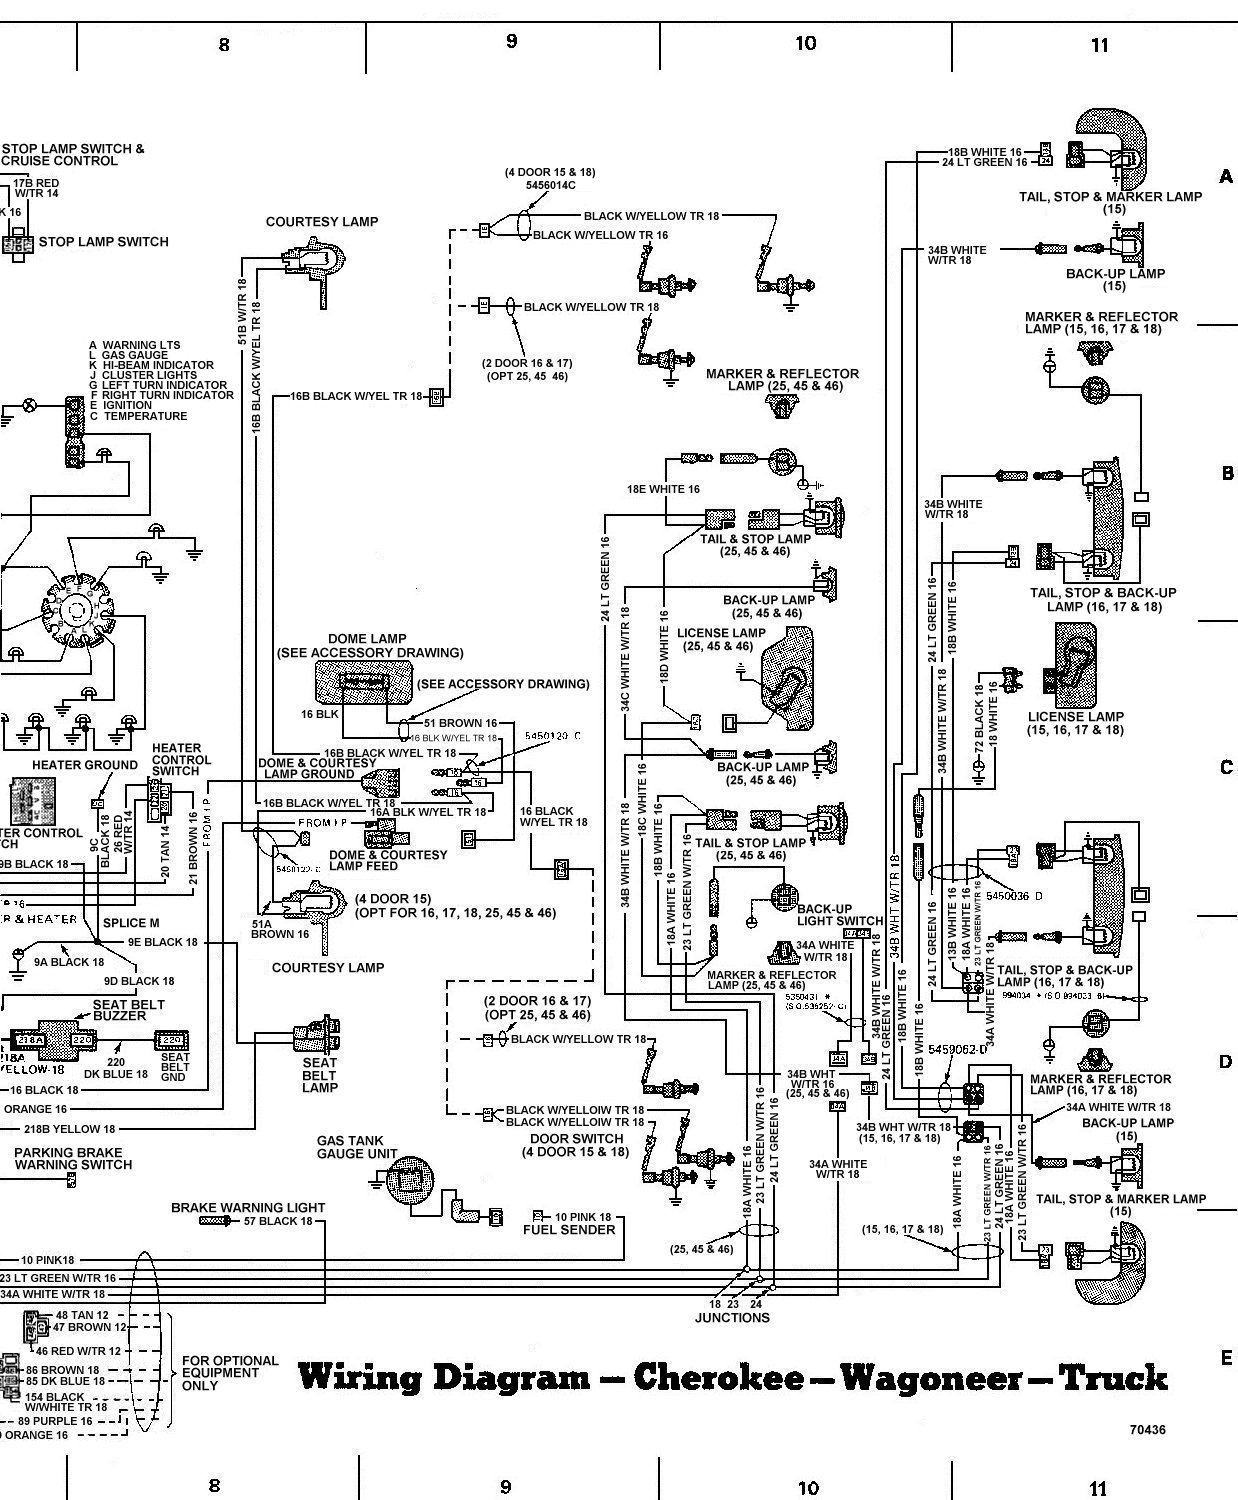 1998 Jeep Grand Cherokee Vacuum Diagram Archive Of Automotive Tj Wiring 87 Wrangler Pictures Rh Smdeeming Co Uk